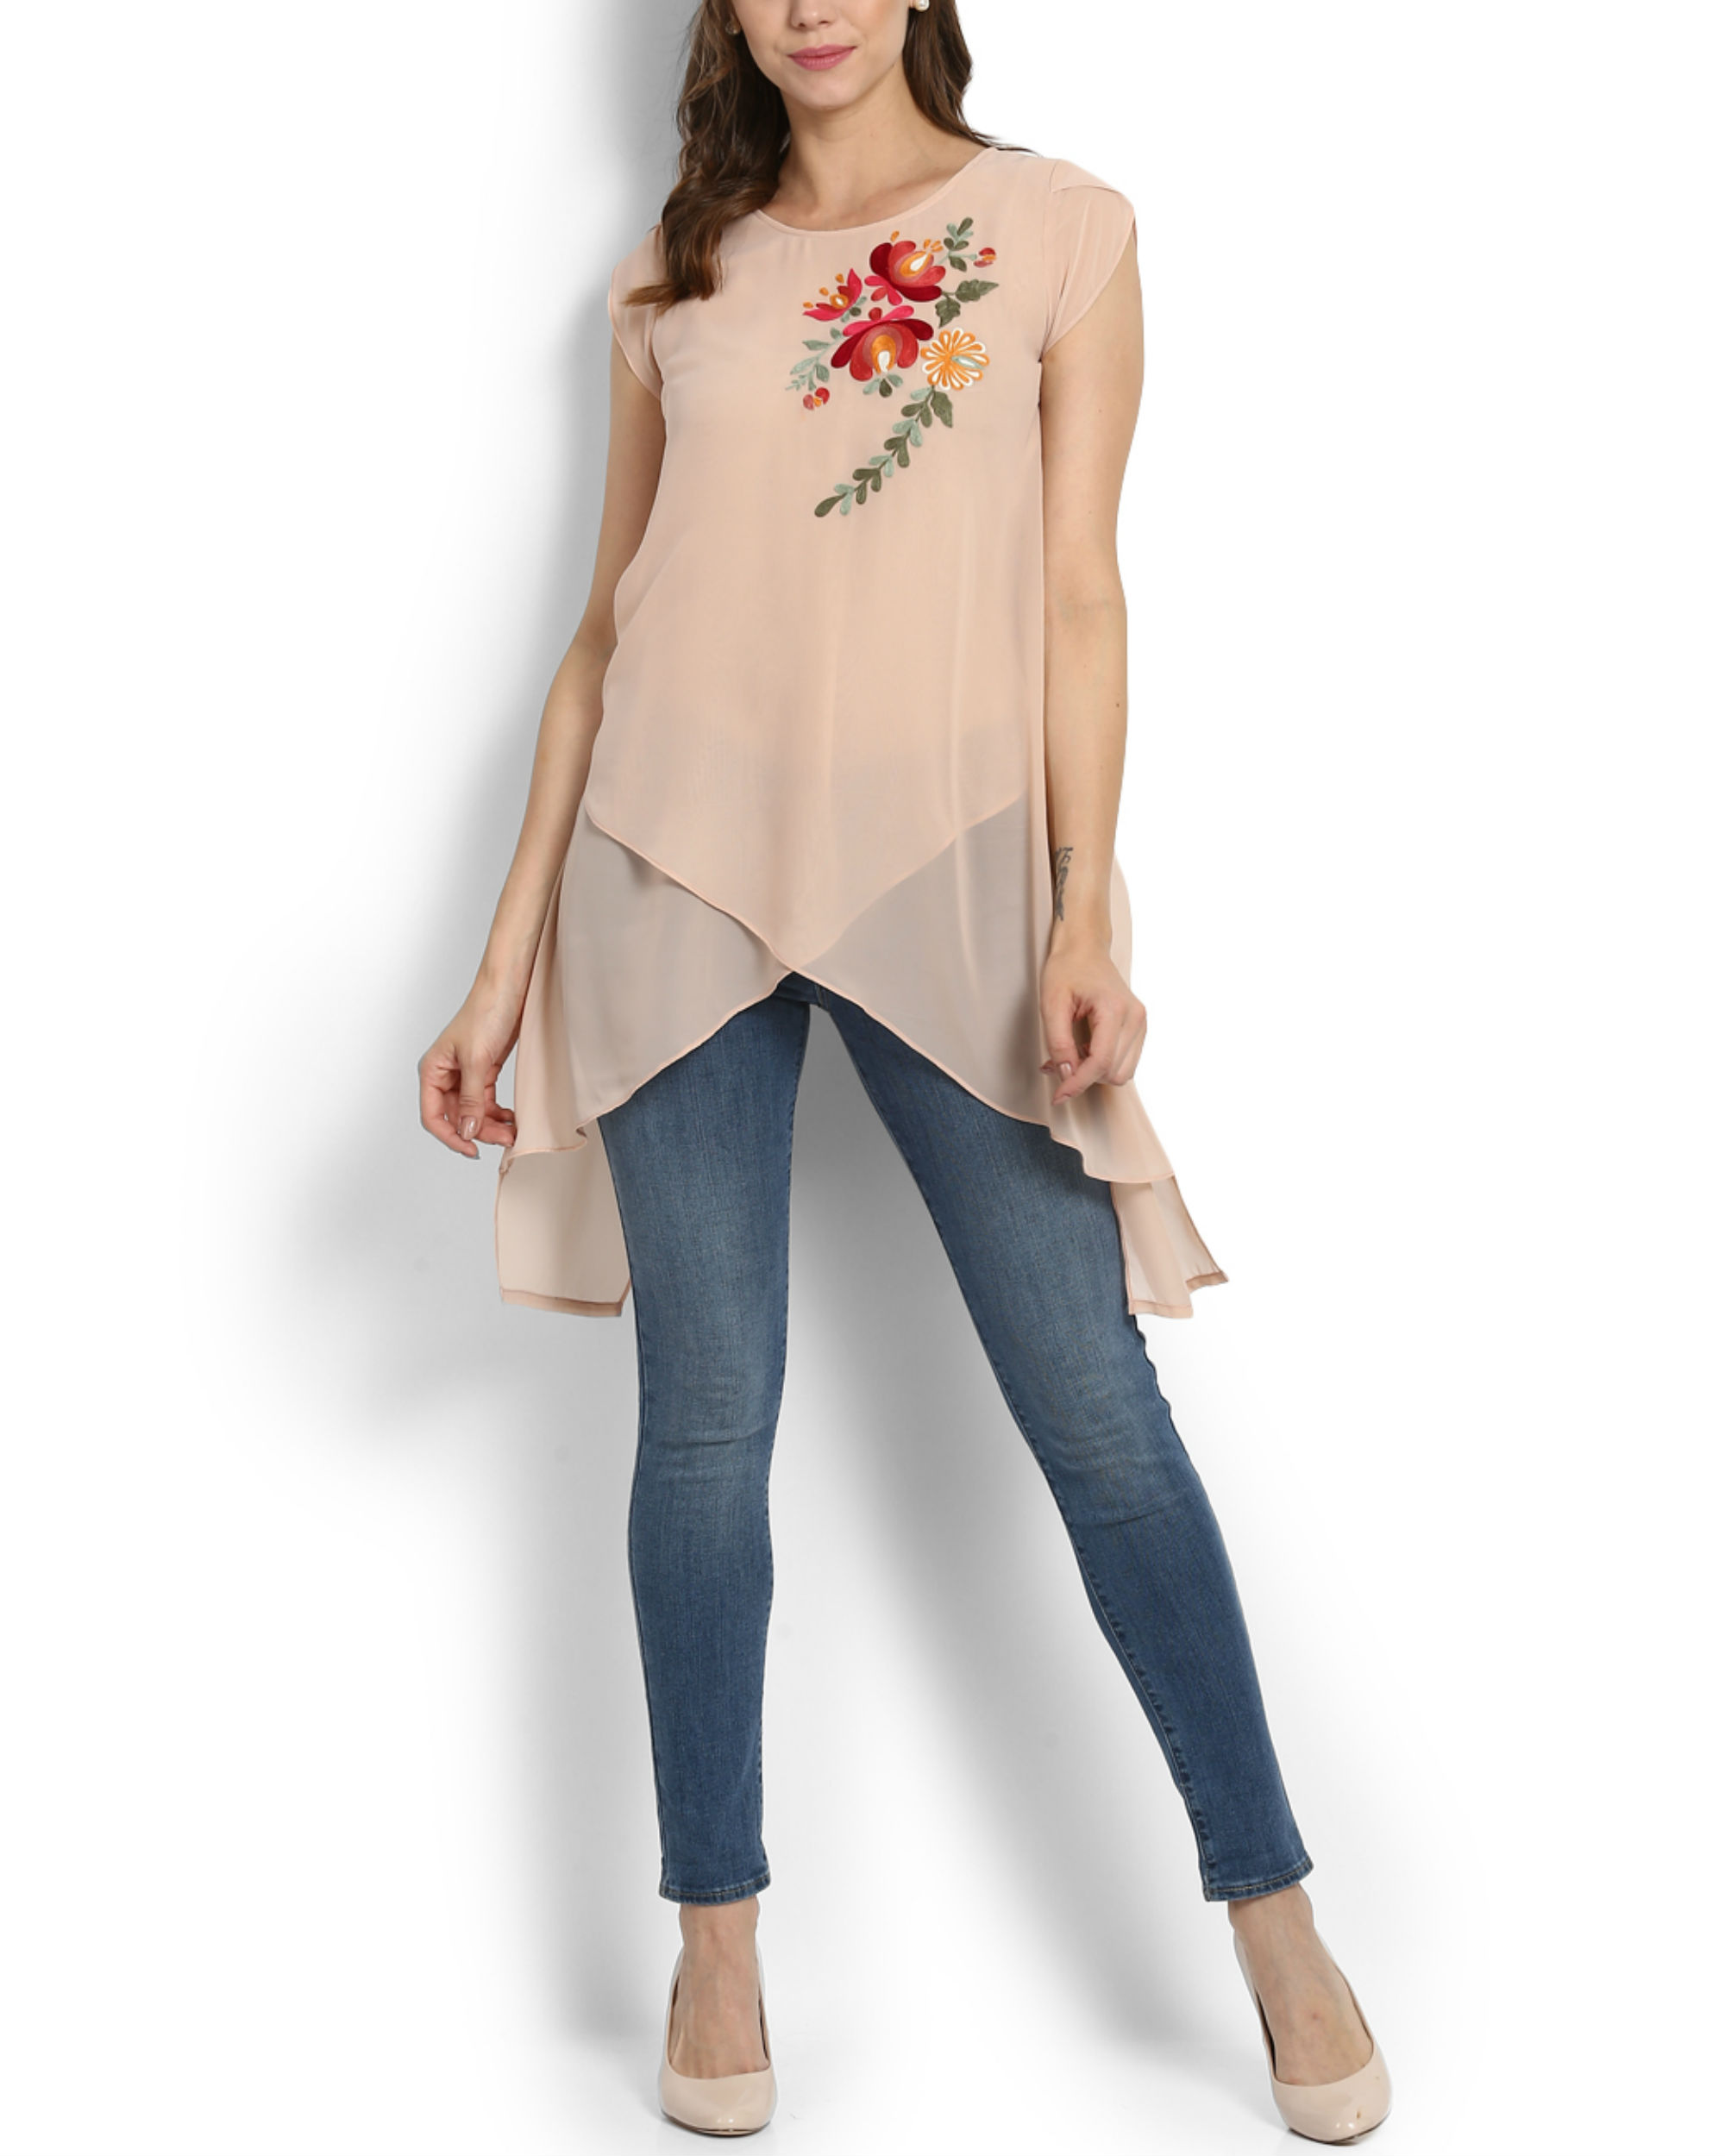 Snowdrop layered top